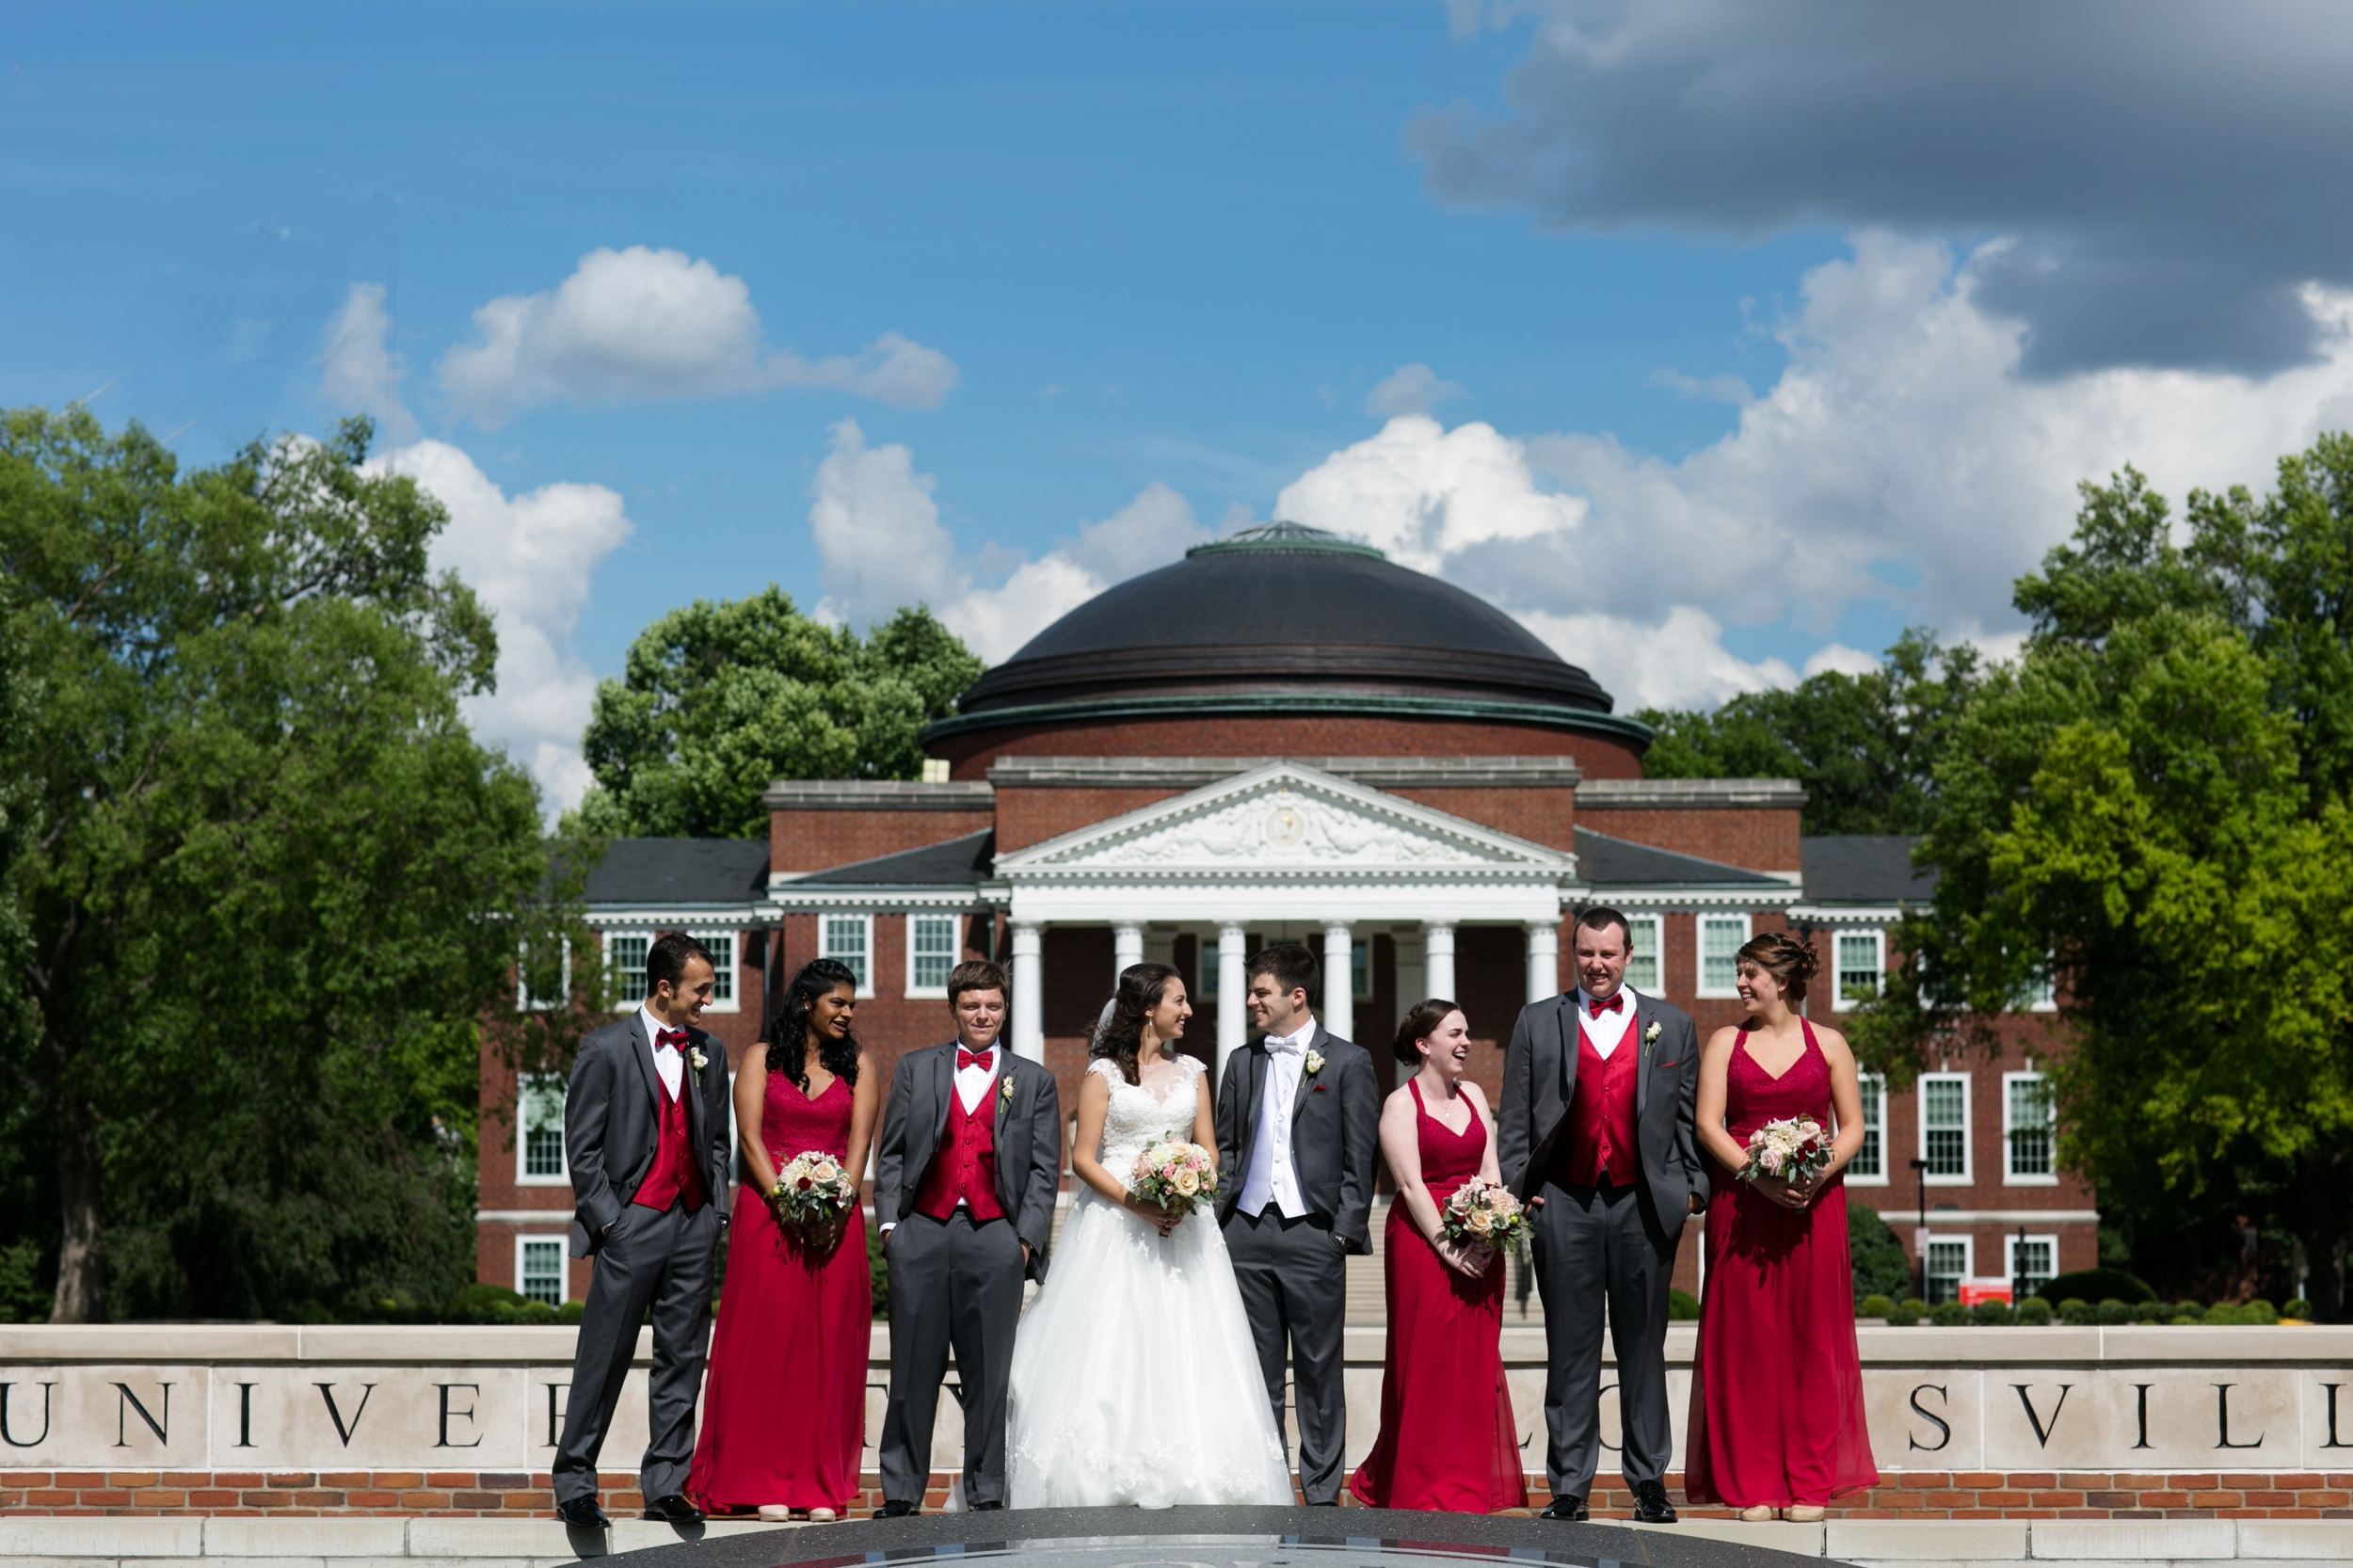 37-university-of-louisville-wedding.JPG